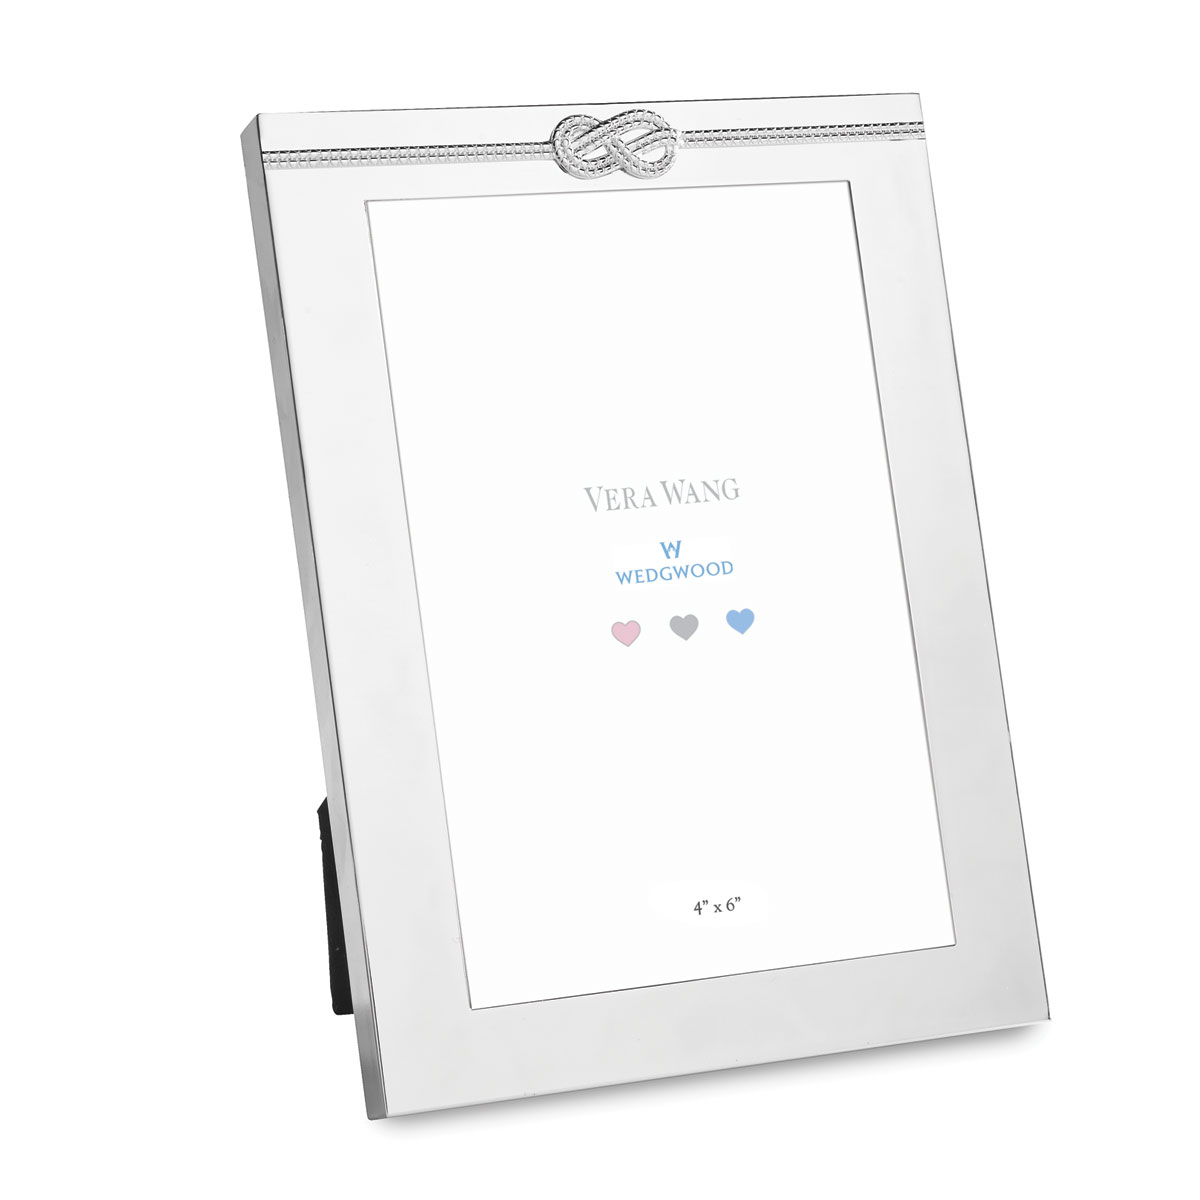 "Vera Wang Wedgwood Oh Baby, Infinity 4x6"" Picture Frame"